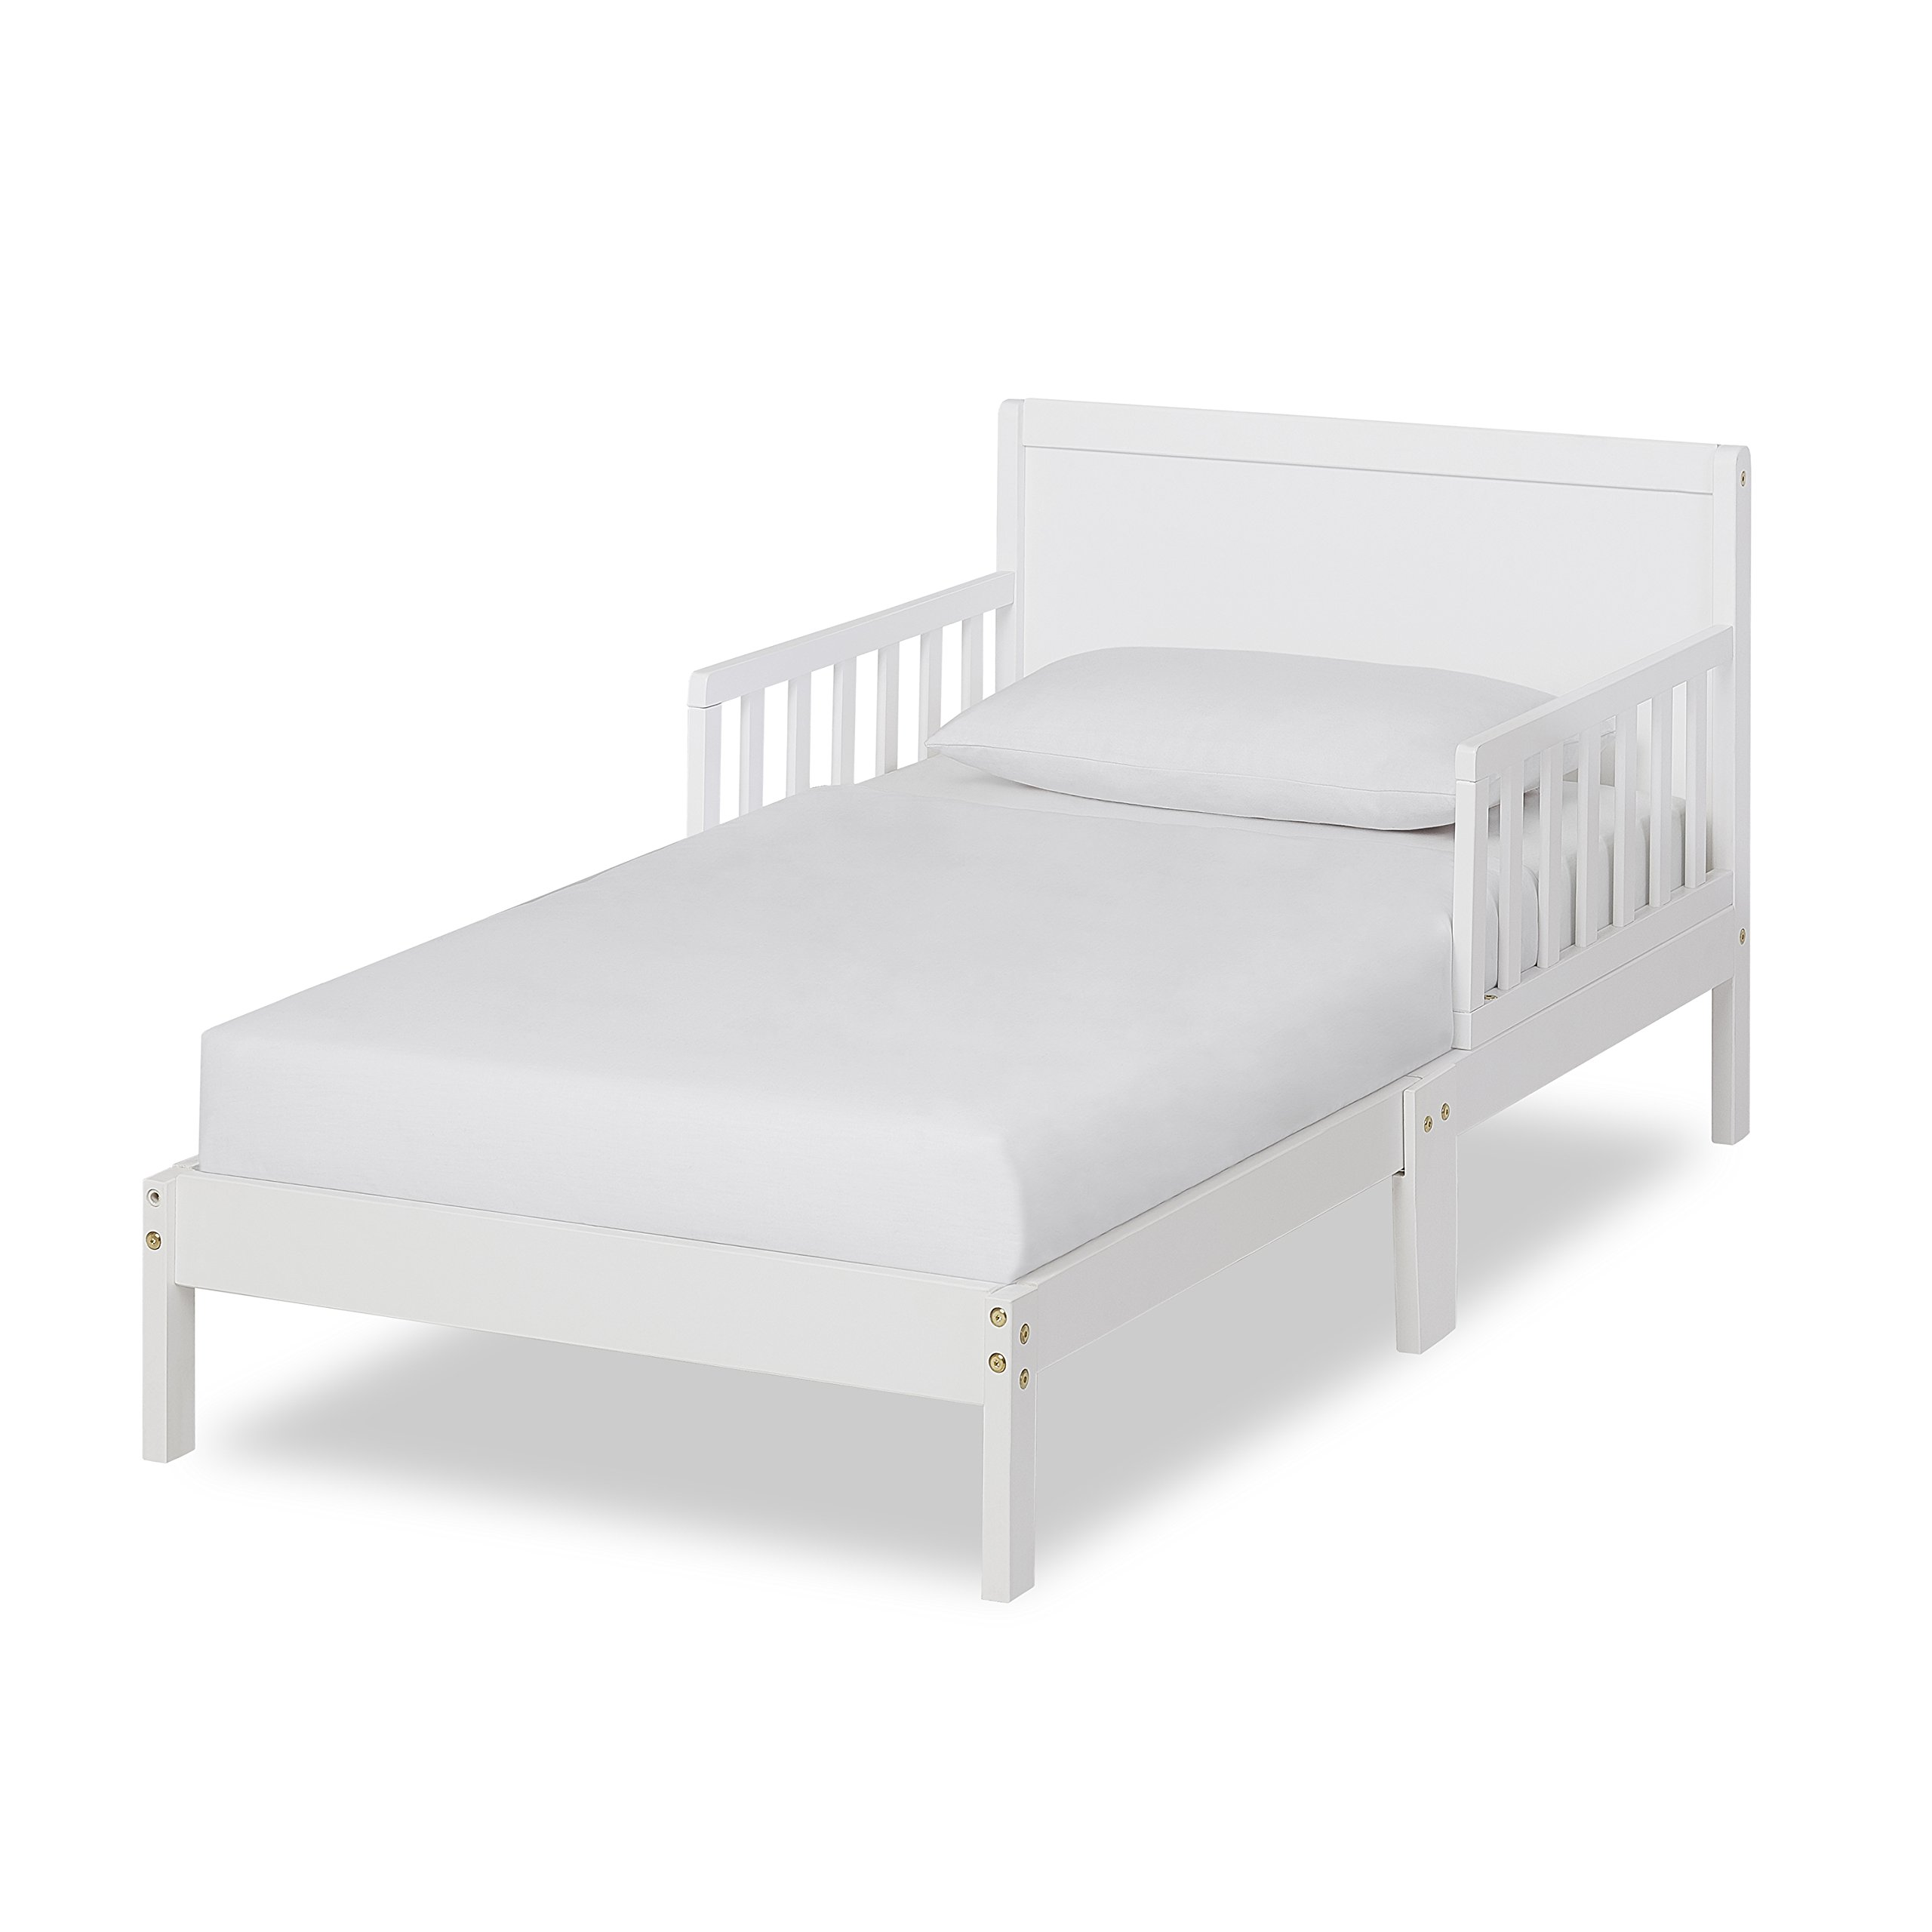 Dream On Me Brookside Toddler Bed, White by Dream On Me